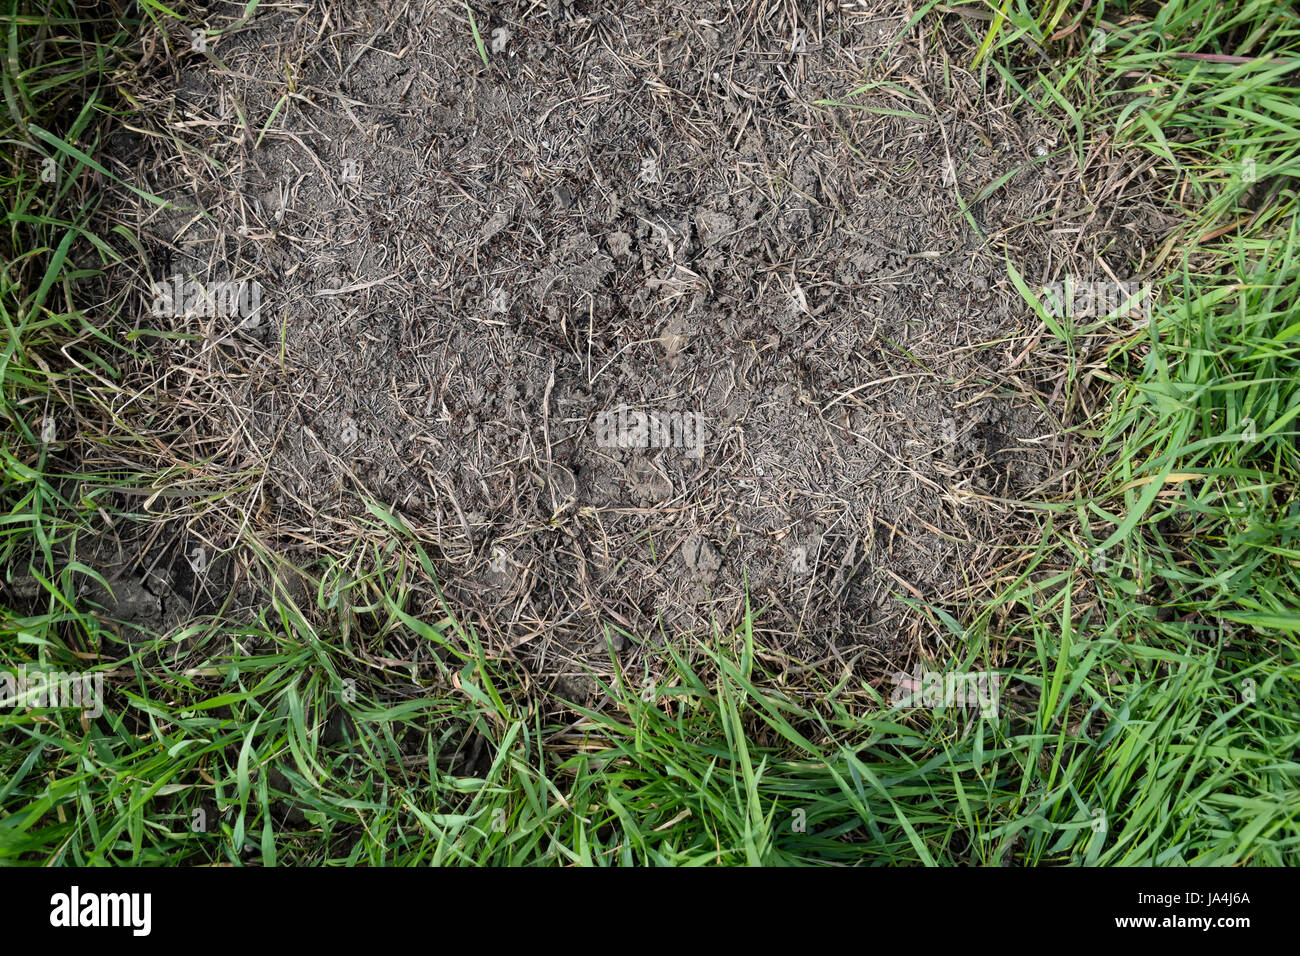 Ordinary ants on an anthill. Social insects. Stock Photo